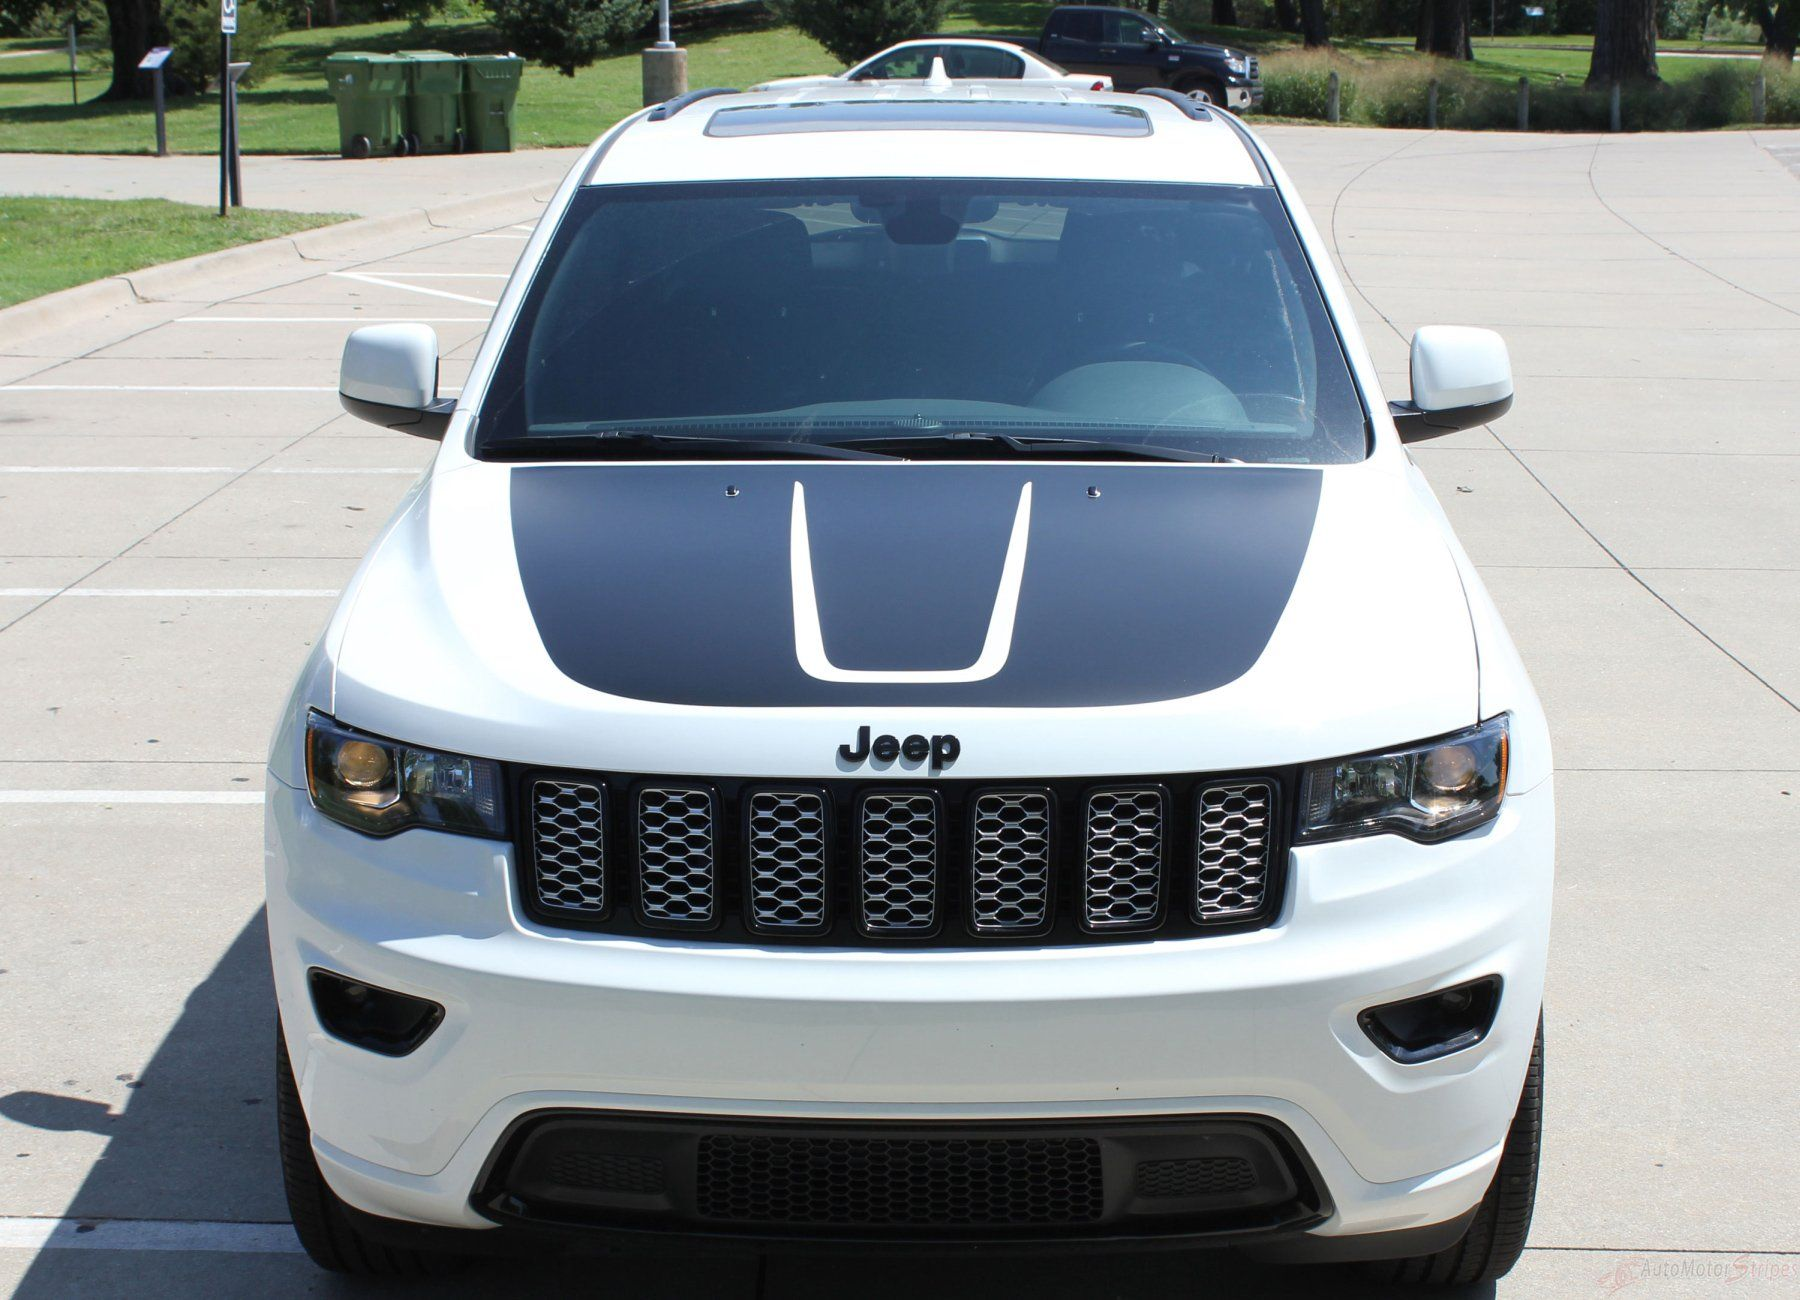 2011 2020 Jeep Grand Cherokee Trailhawk Hood Decal Trail Center Blackout Vinyl Graphic Stripes Jeep Grand Cherokee Jeep Grand Grand Cherokee Trailhawk